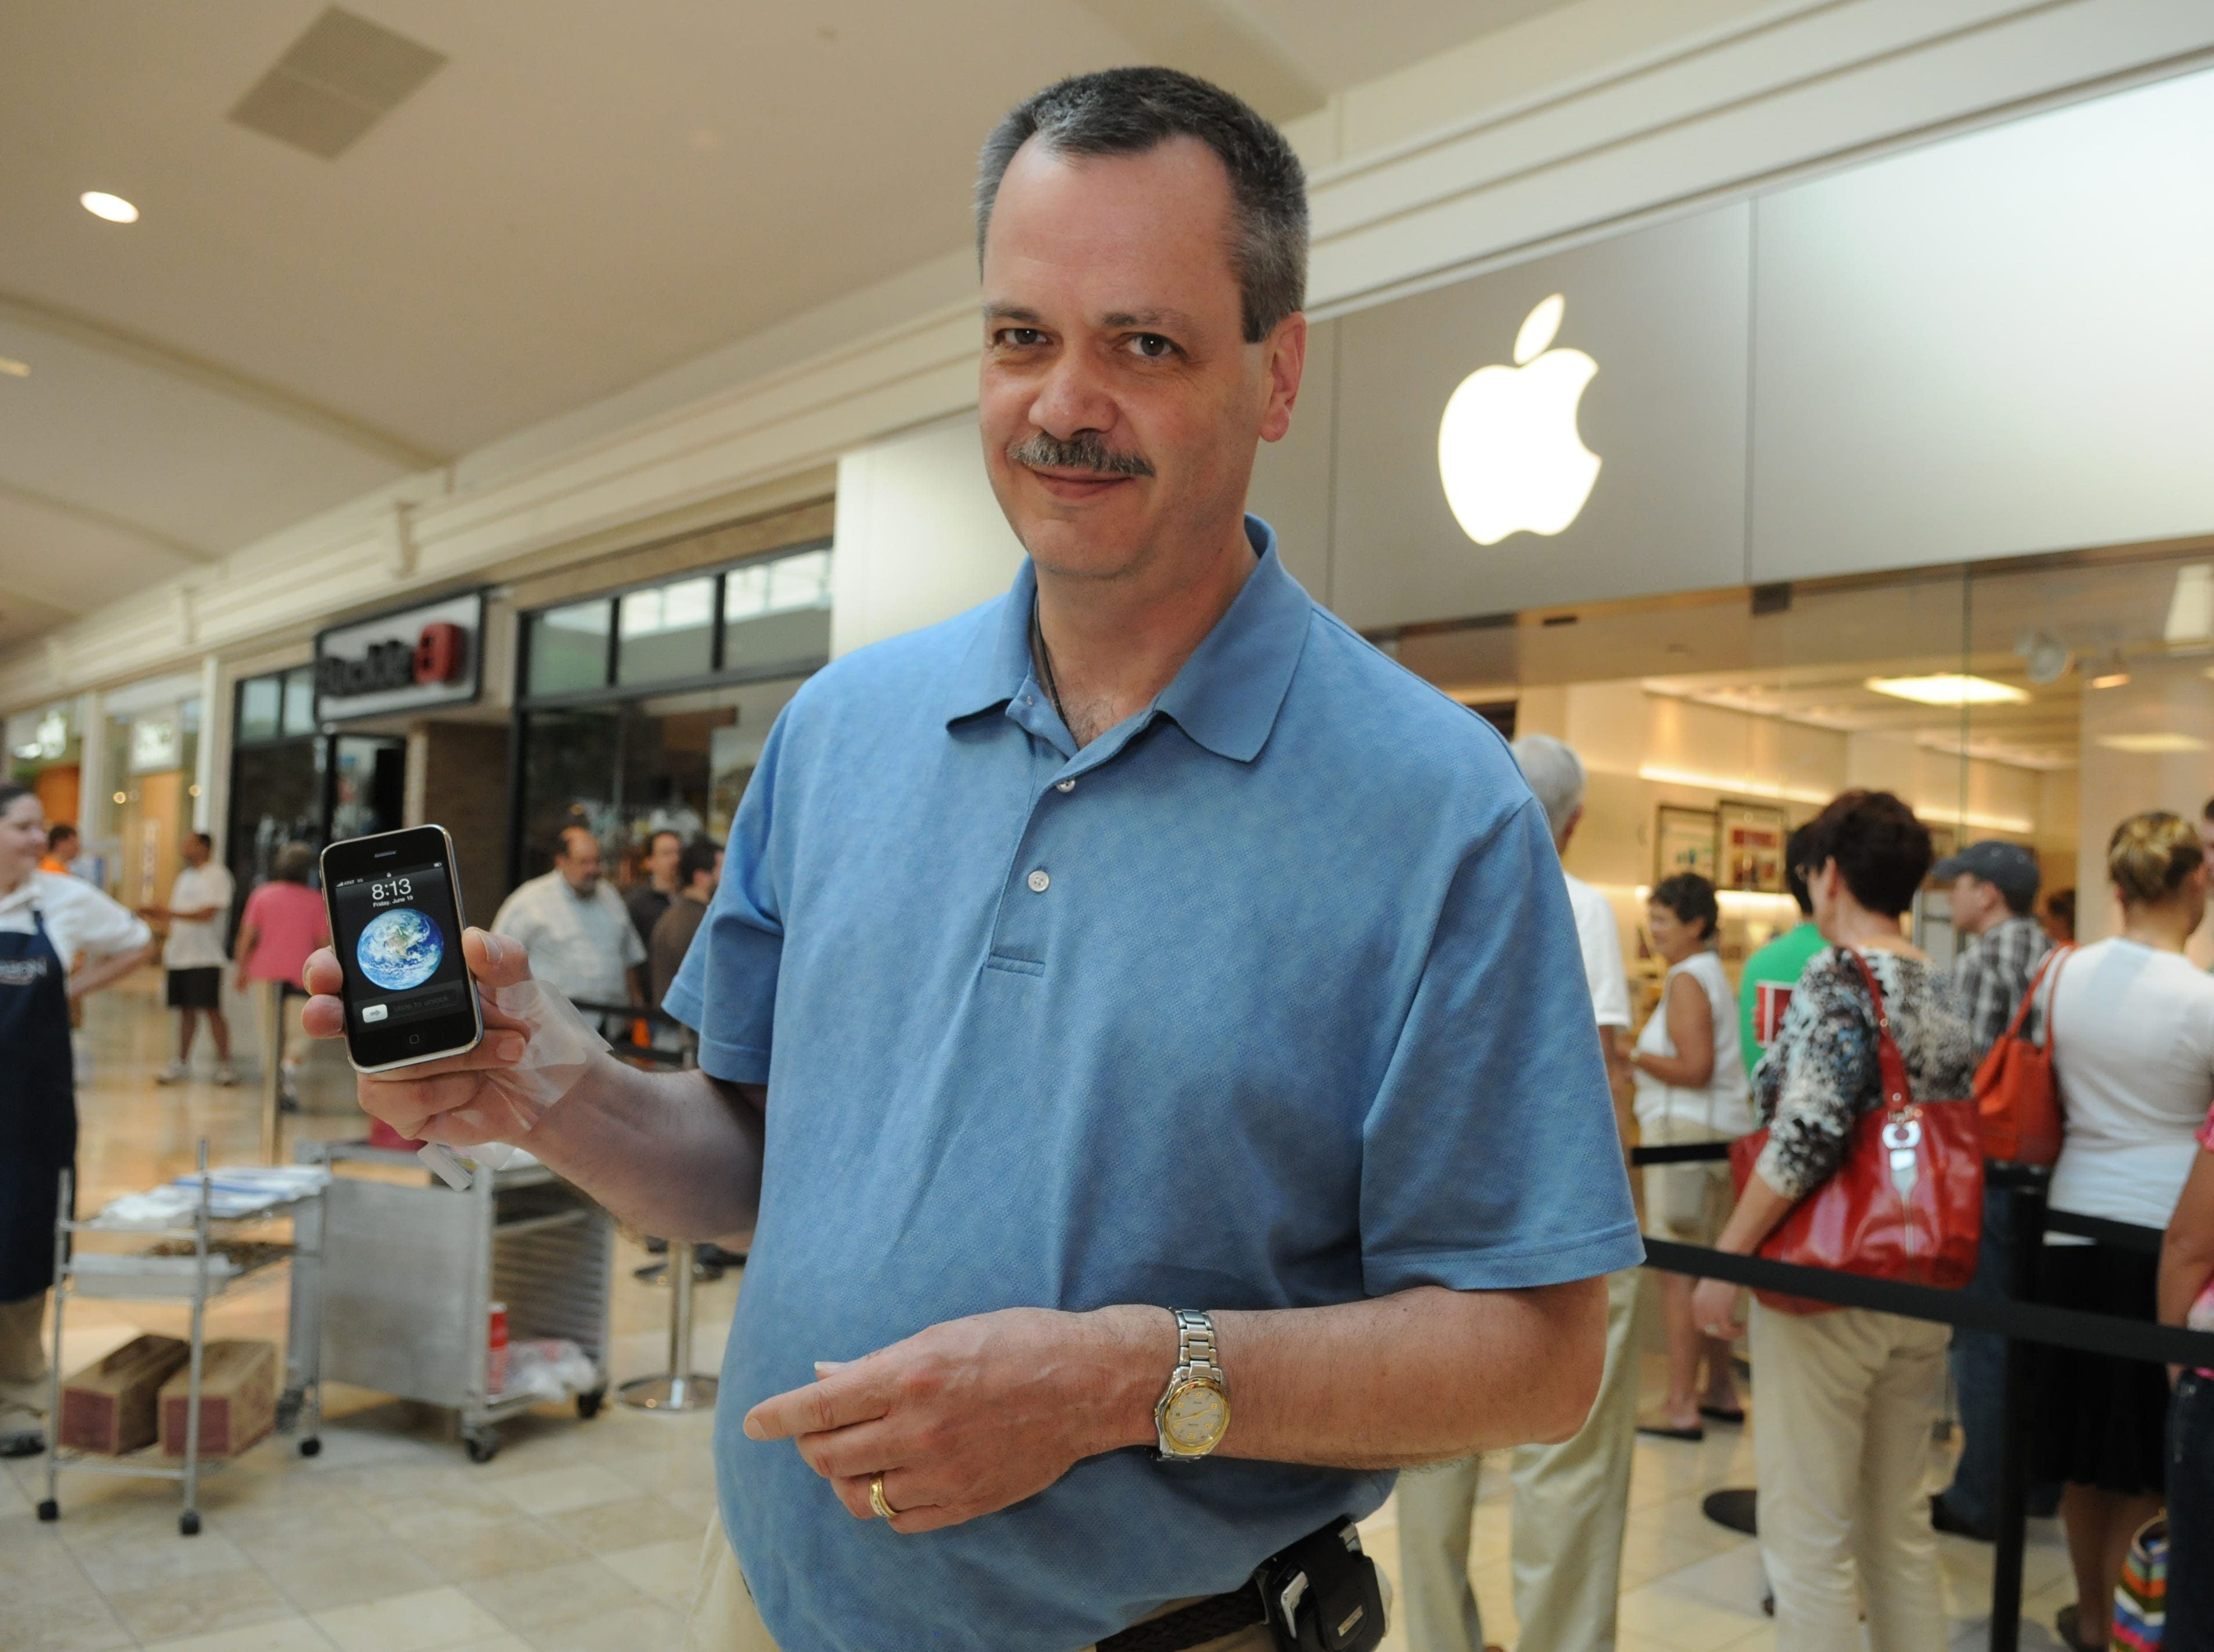 Bob Kreisa of Halls holds his new iPhone outside the Apple Store in West Town Mall Friday morning. The new Apple iPhone launches at the local Apple store in West Town Mall and at ATT stores.   - Friday, June 19, 2009